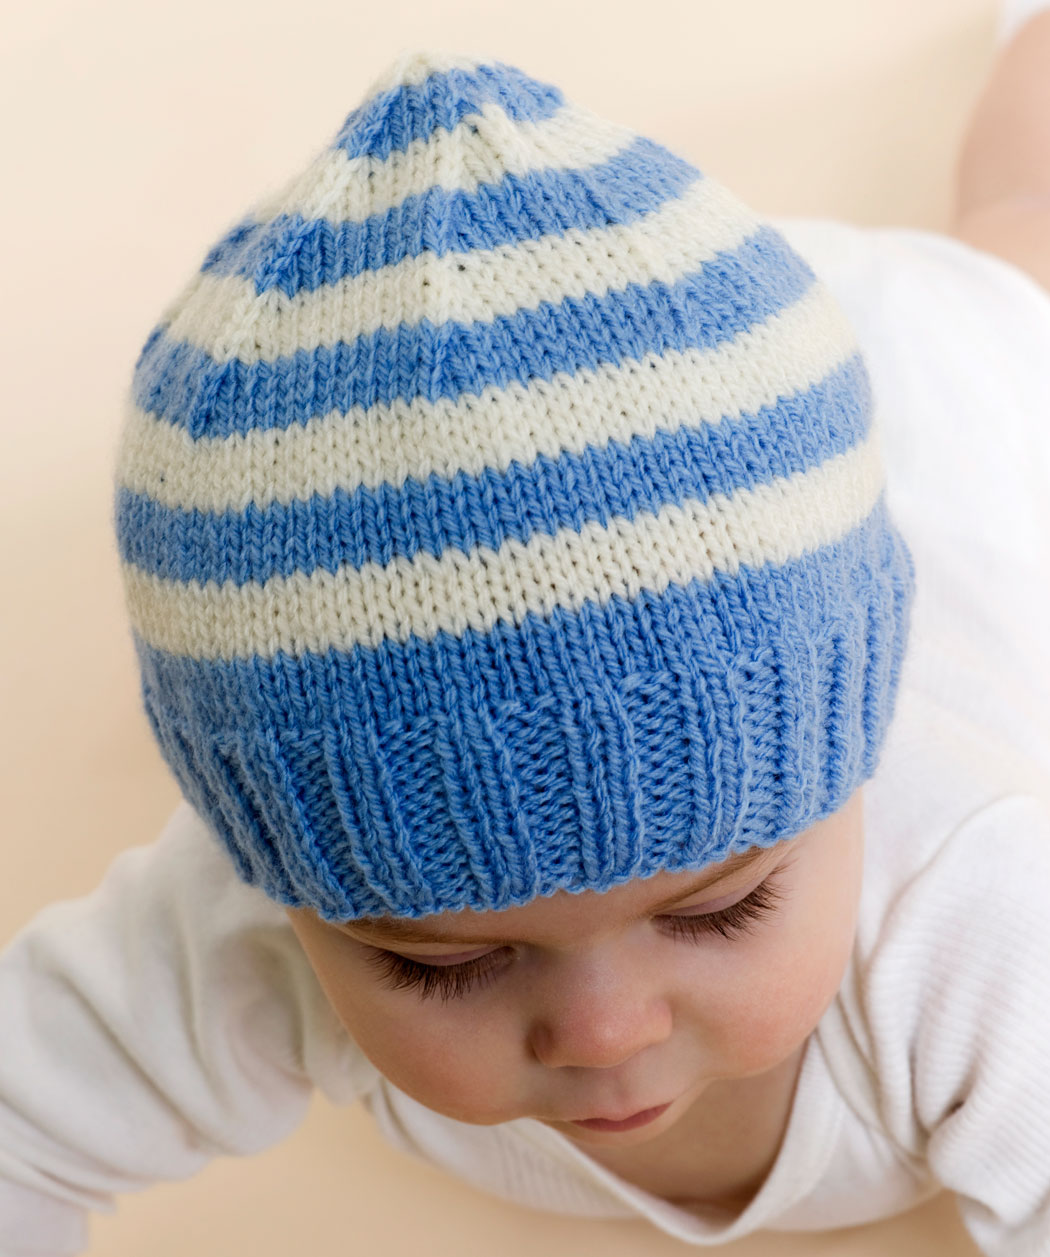 Knitting Patterns For Baby Boy Hats : Knitting Hats   Tag Hats